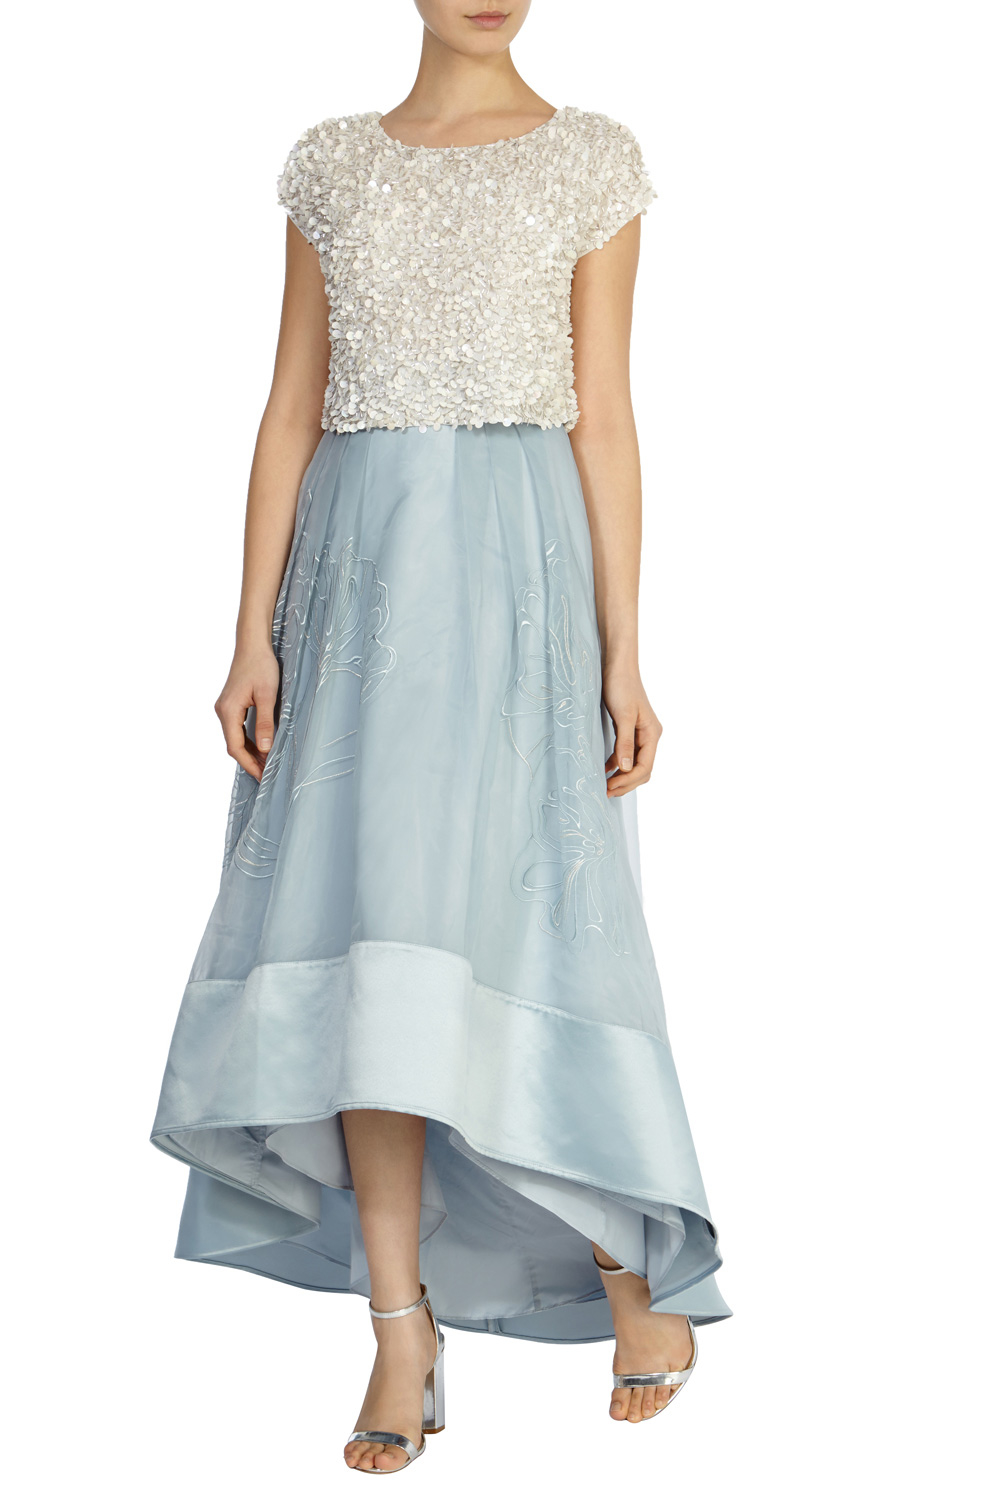 Lyst - Coast Sulla Skirt in Blue